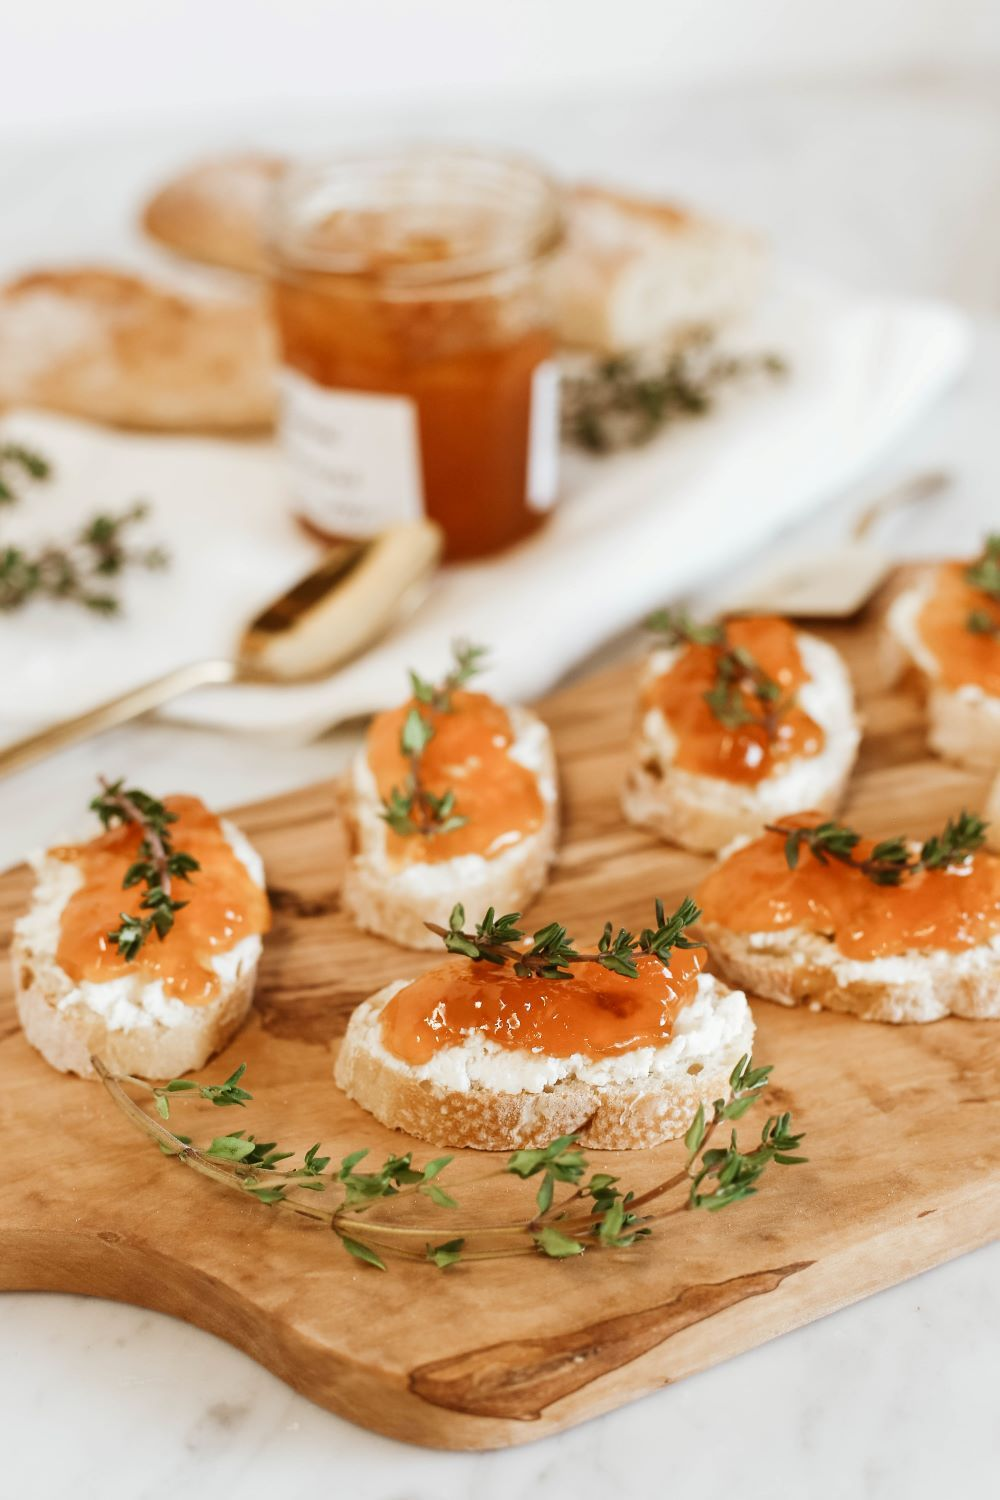 Goat Cheese Crostini Recipe: Friendsgiving Food Idea - Lulus.com Blog #friendsgivingfood